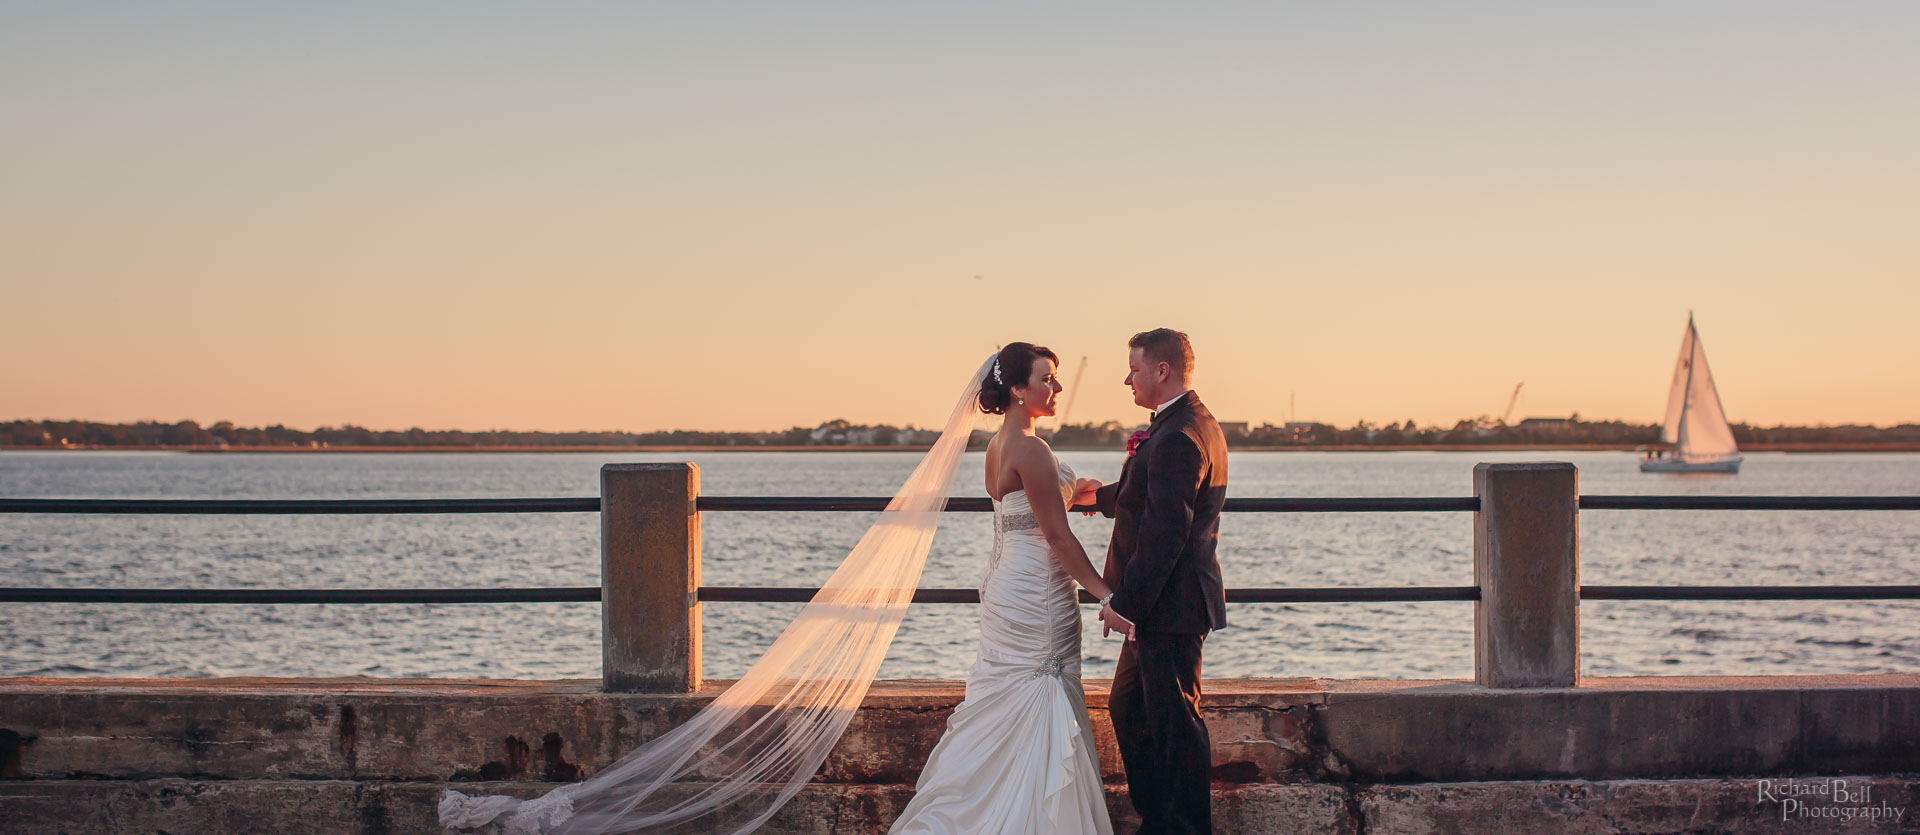 Bride and Groom at Charleston Battery